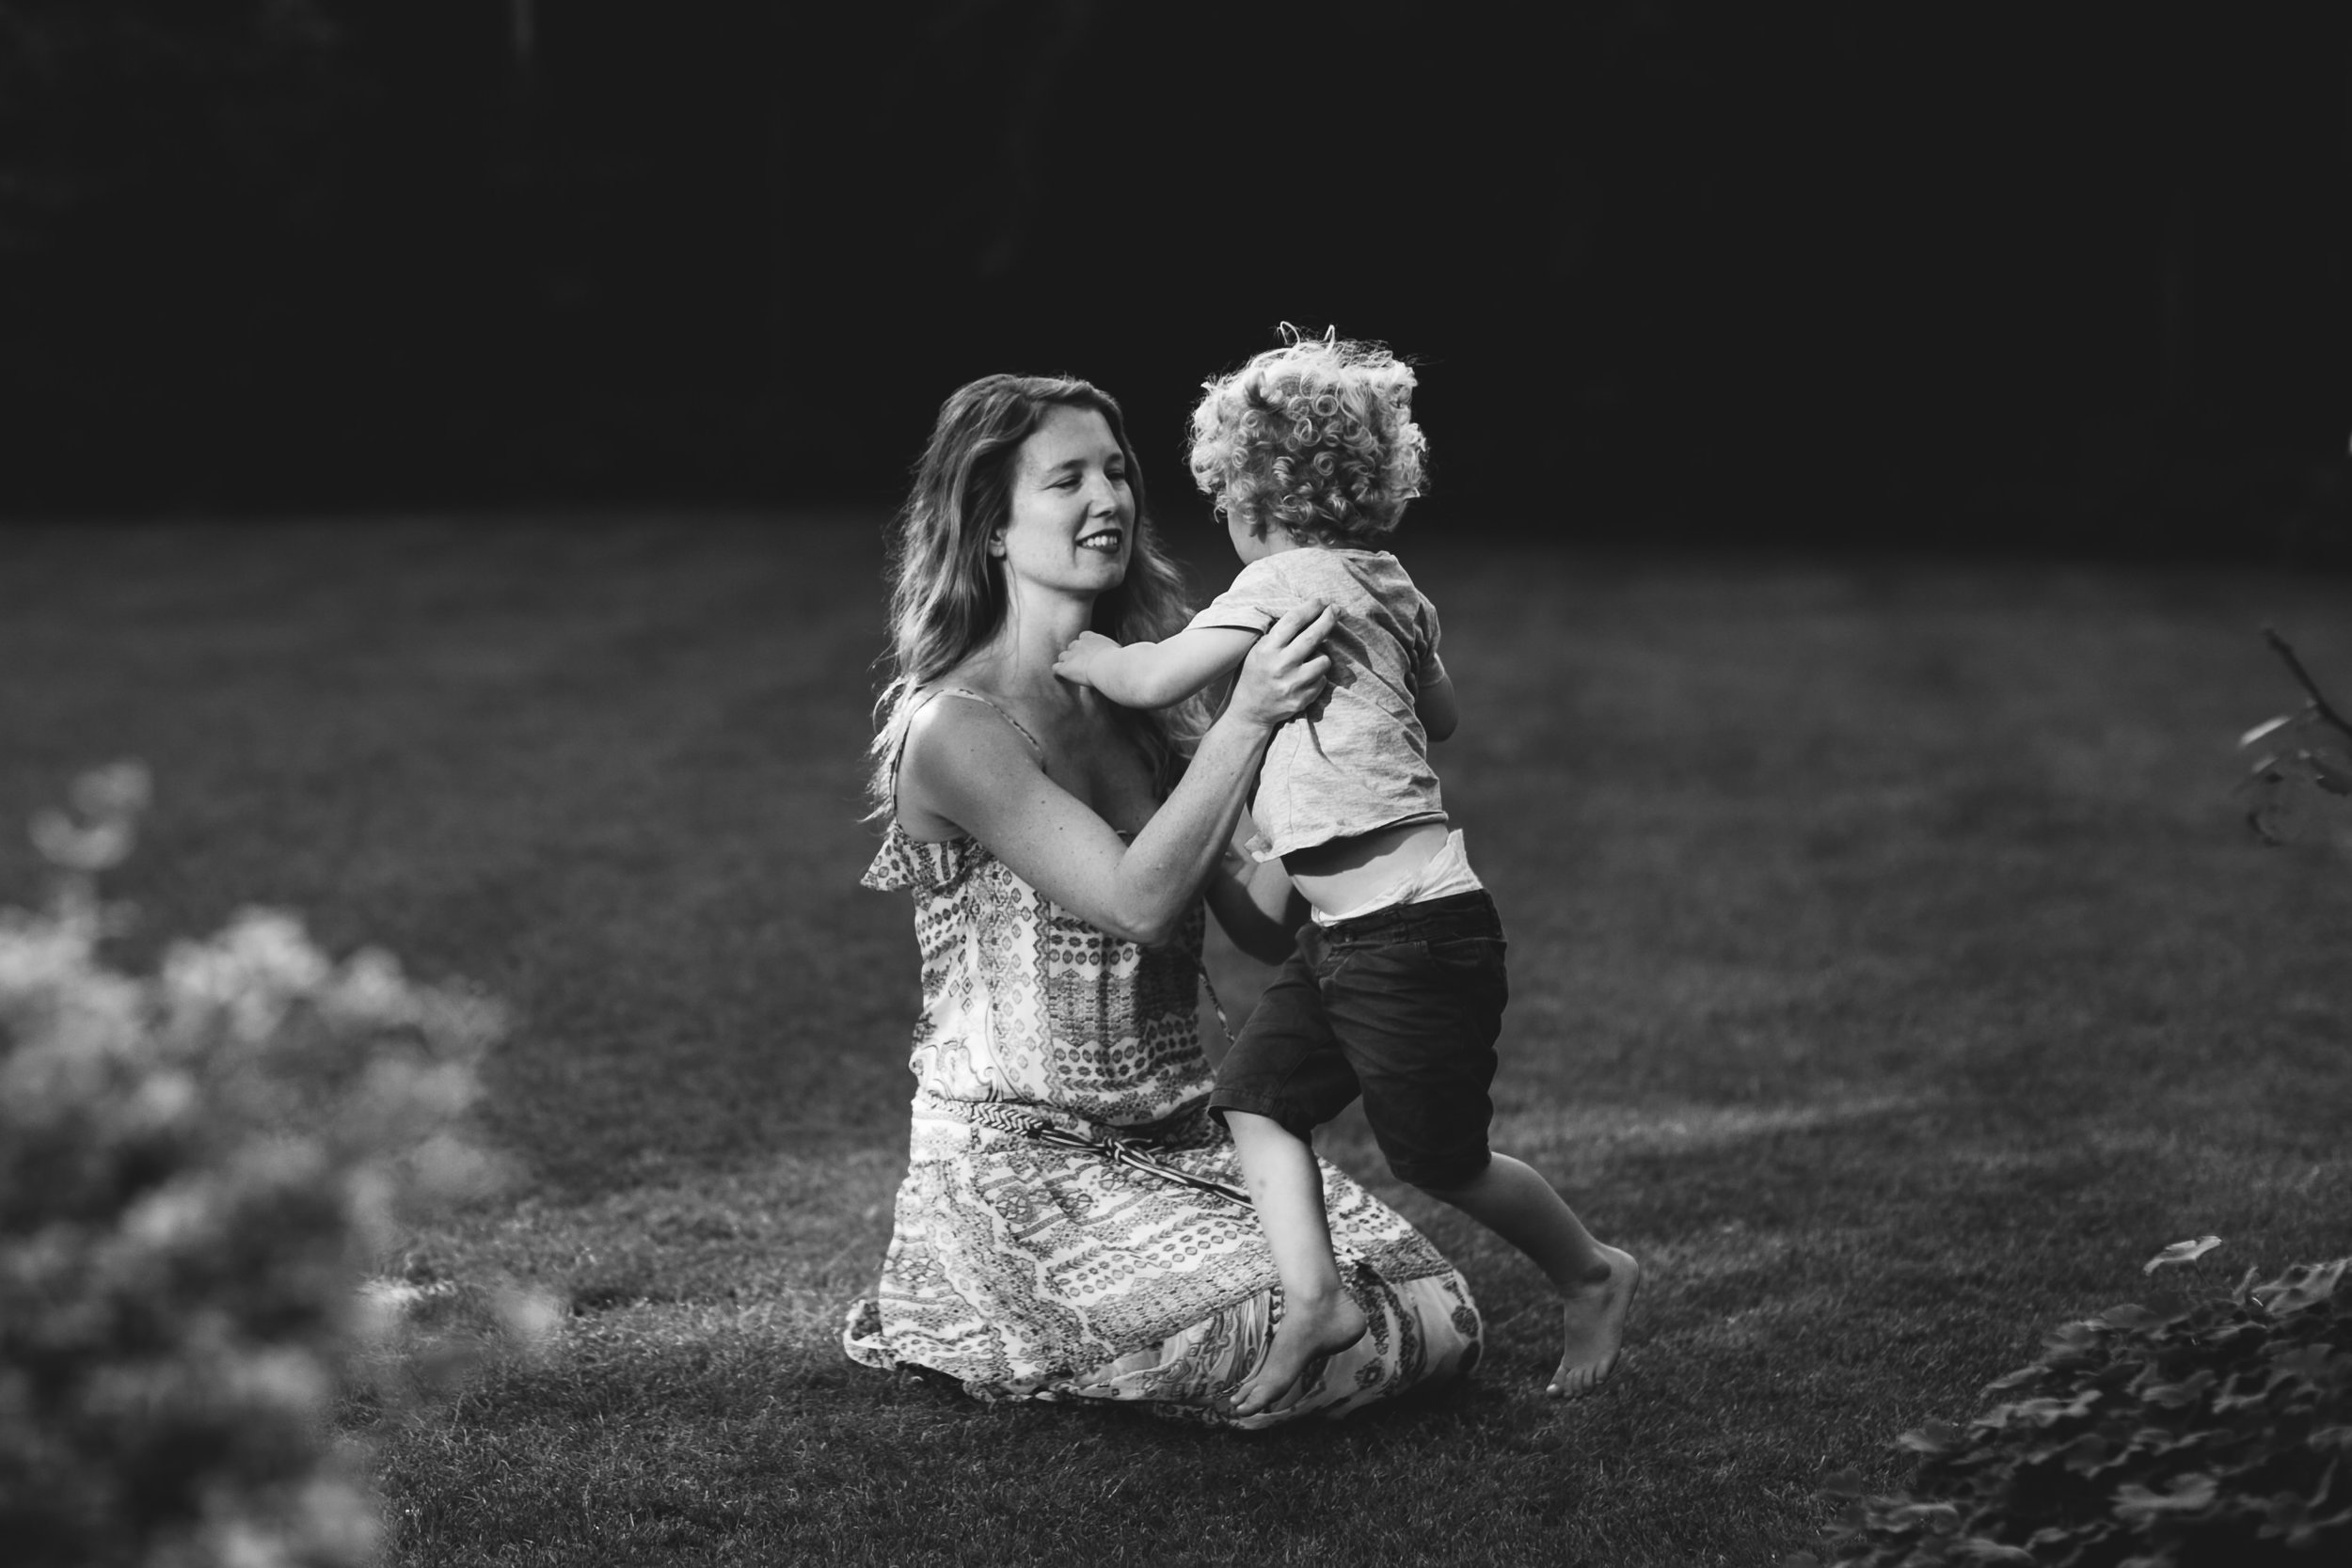 Contact Me - Ready to get in touch? I'd love to chat and together we can plan your unique photoshoot tailored specifically for you